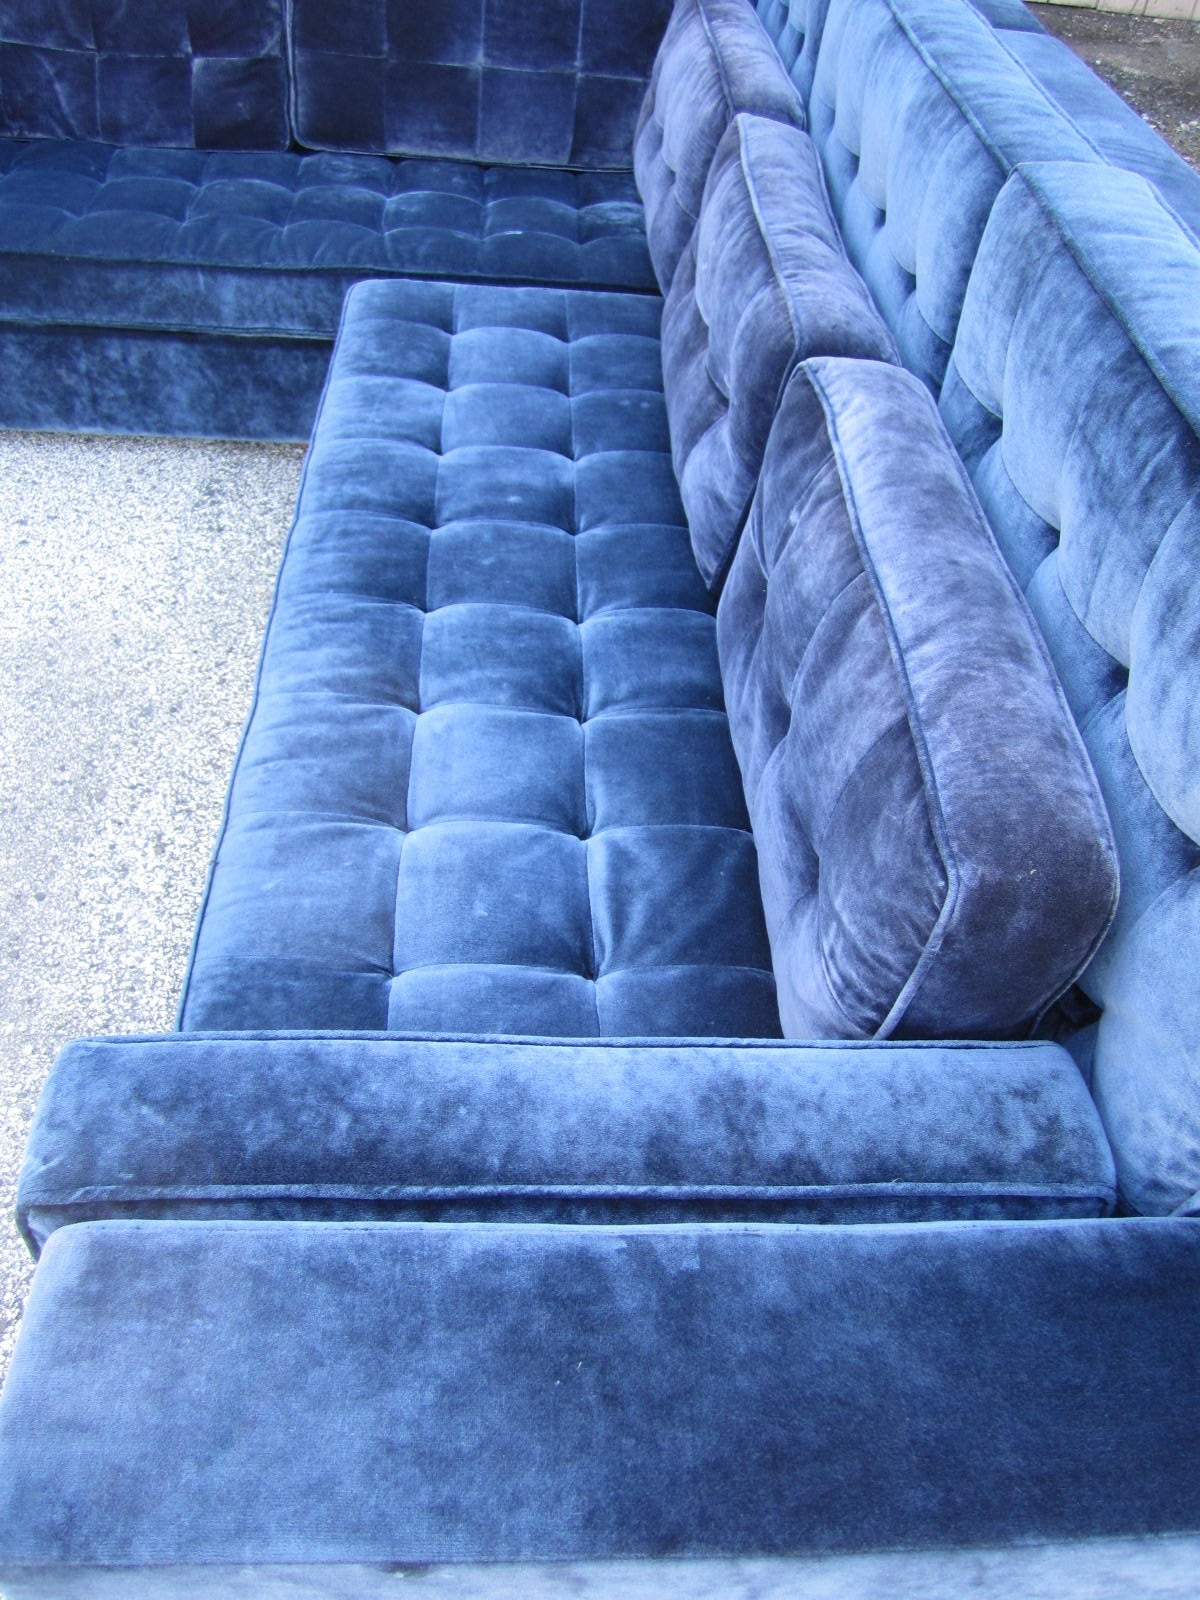 Upholstery Stunning Large-Scale Harvey Probber Style Sectional Sofa, Mid-Century Modern For Sale